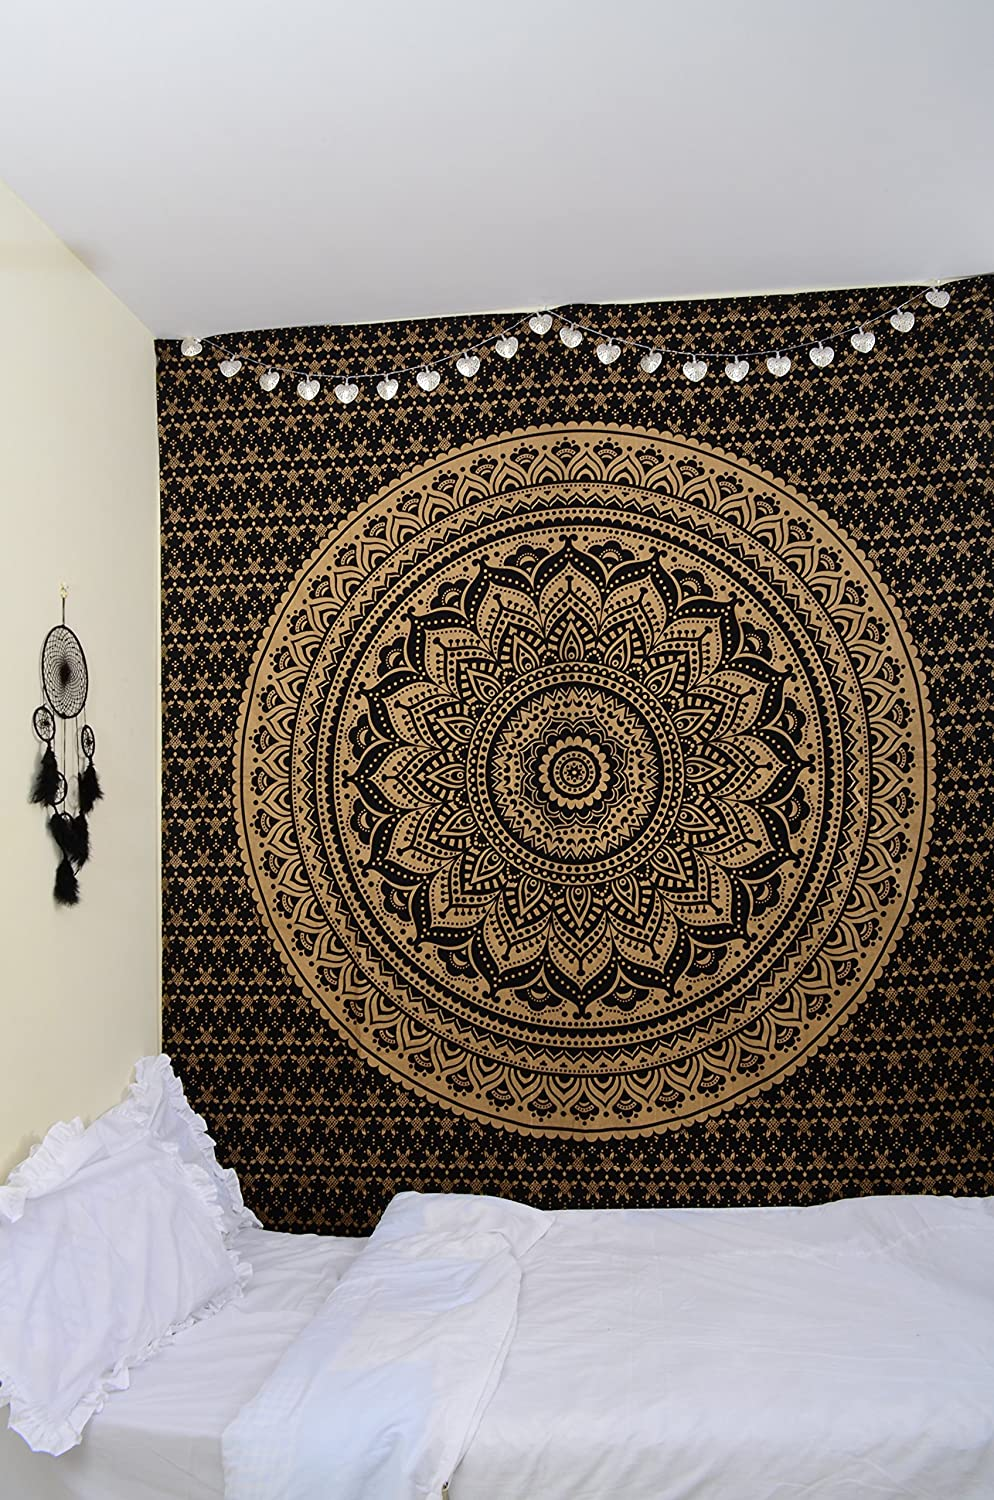 Queen Mandala Home Decor Bohemian Tapestries Hippie Wall Hanging Tapestries RawyalCrafts Original Gold and Black Ombre Tapestry Mandala Hippie Tapestry